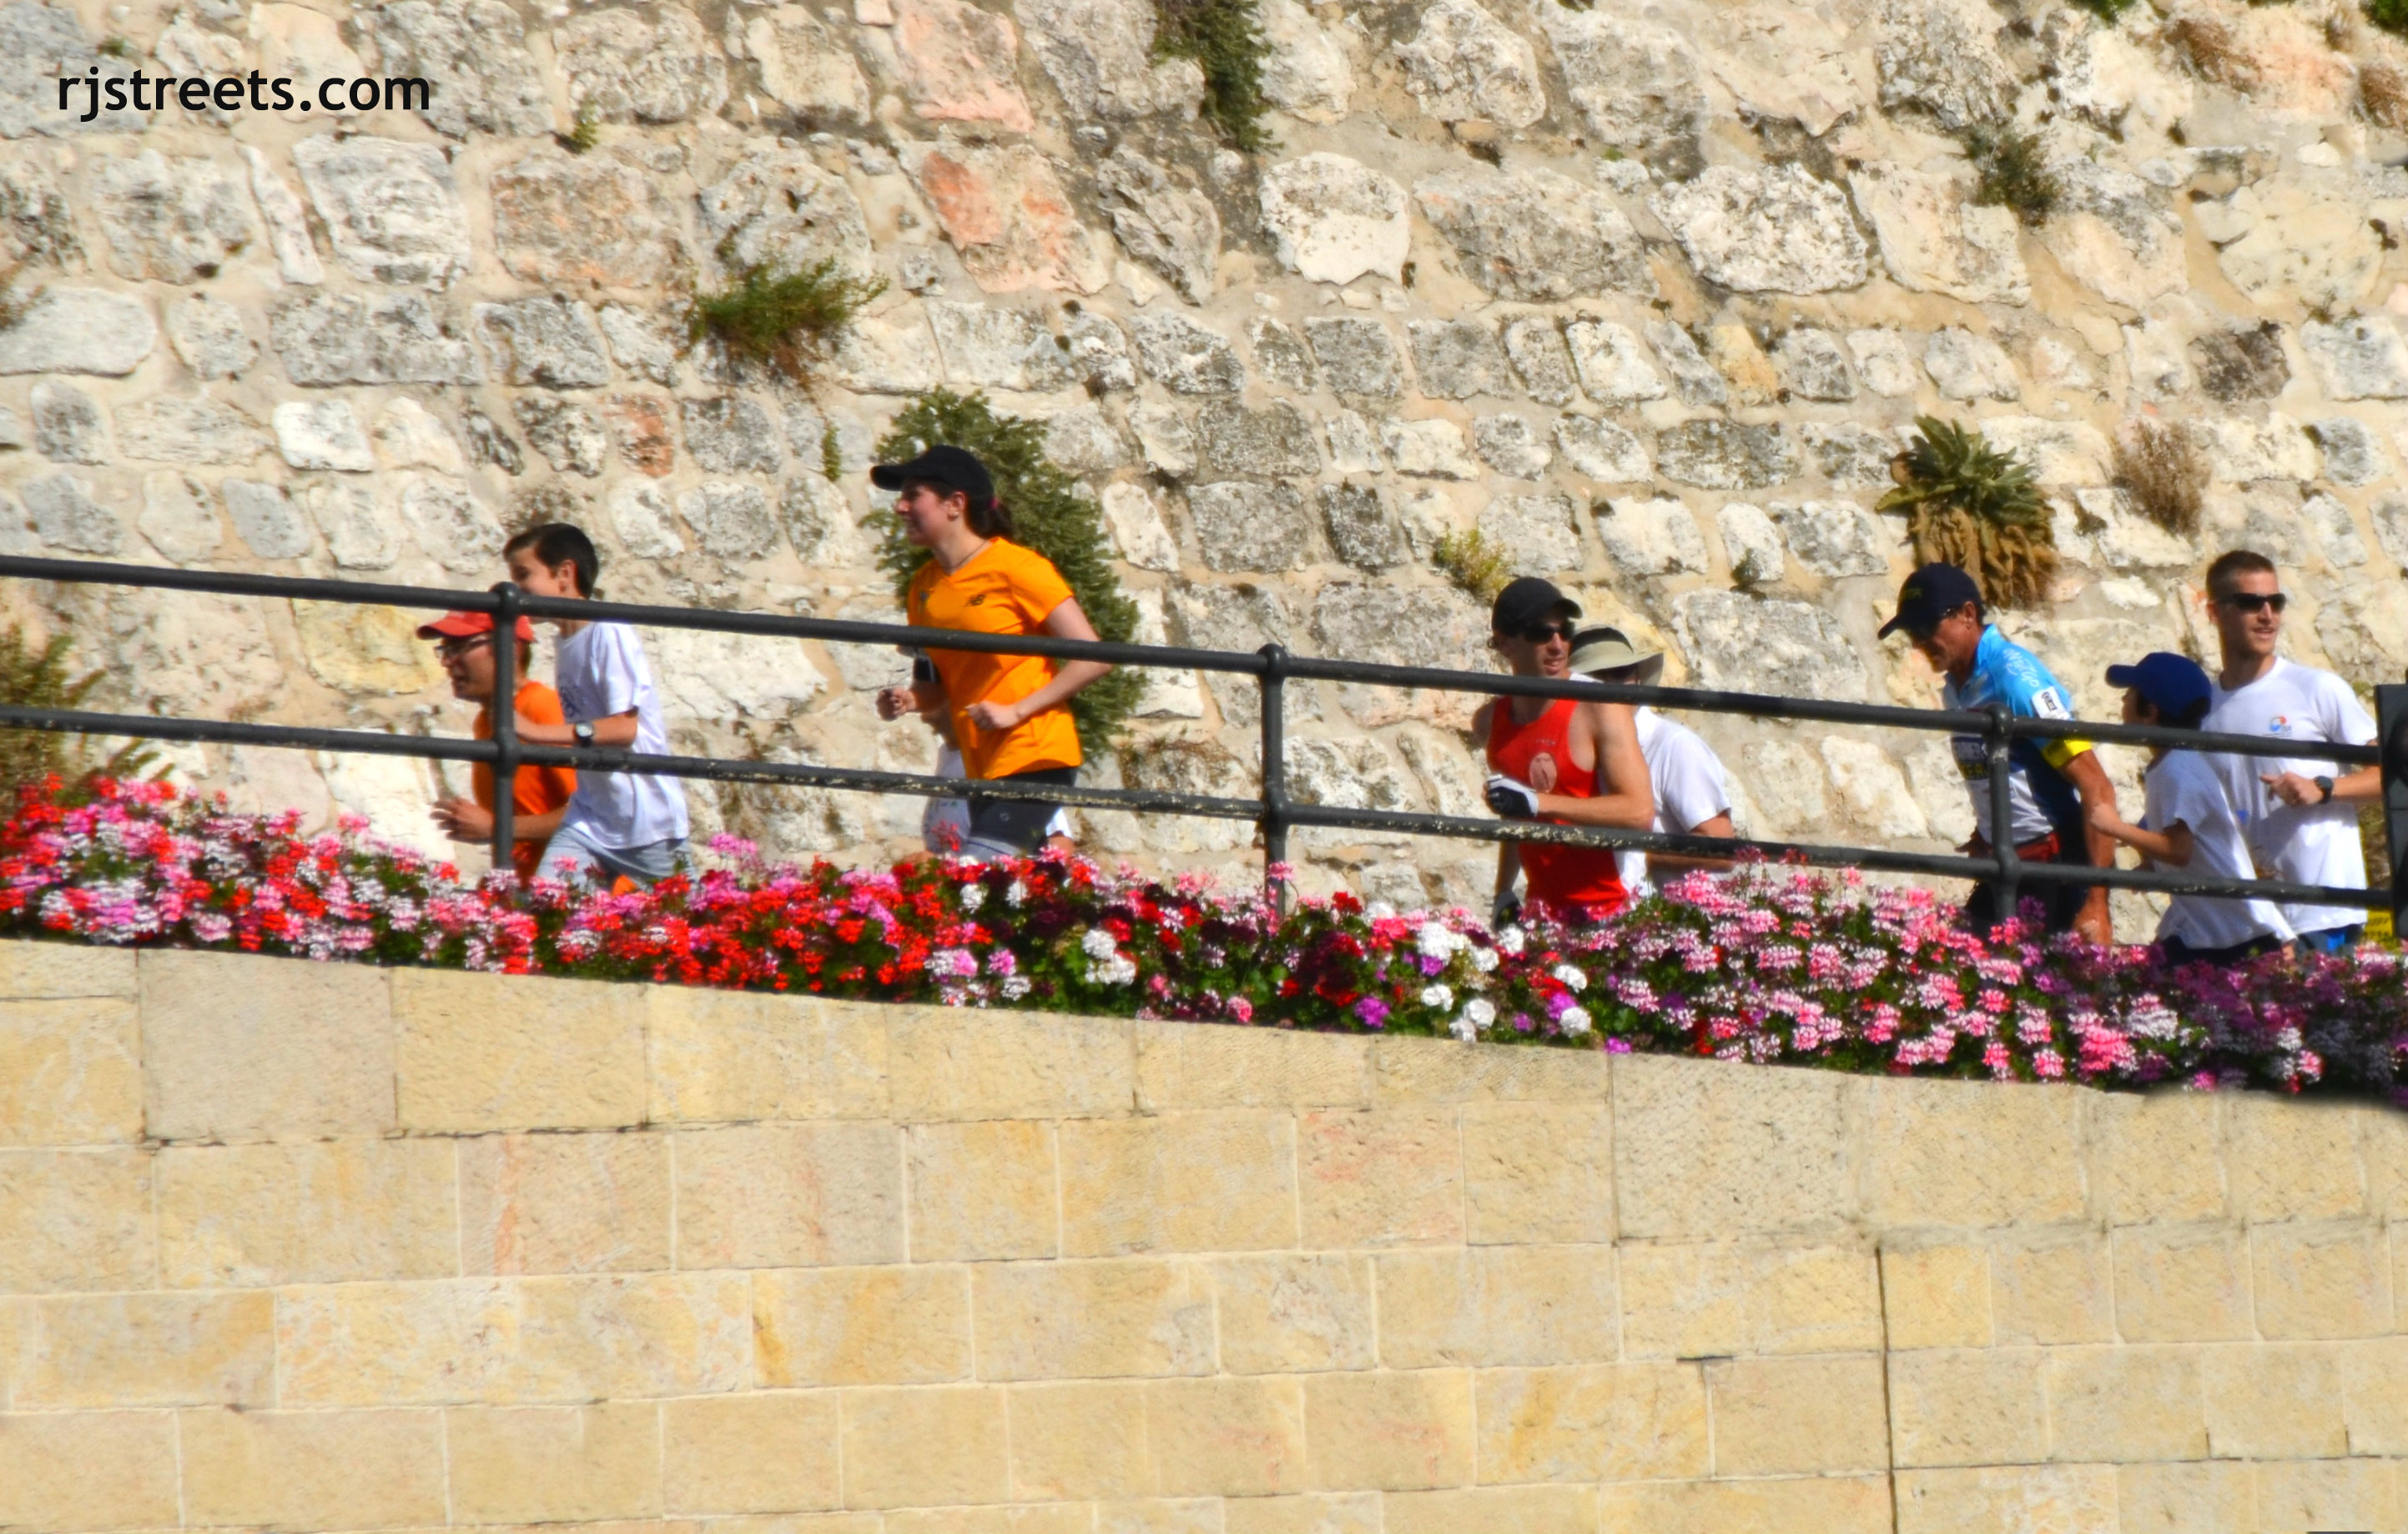 image Pat Farmer, photo runners near Jaffa Gate,